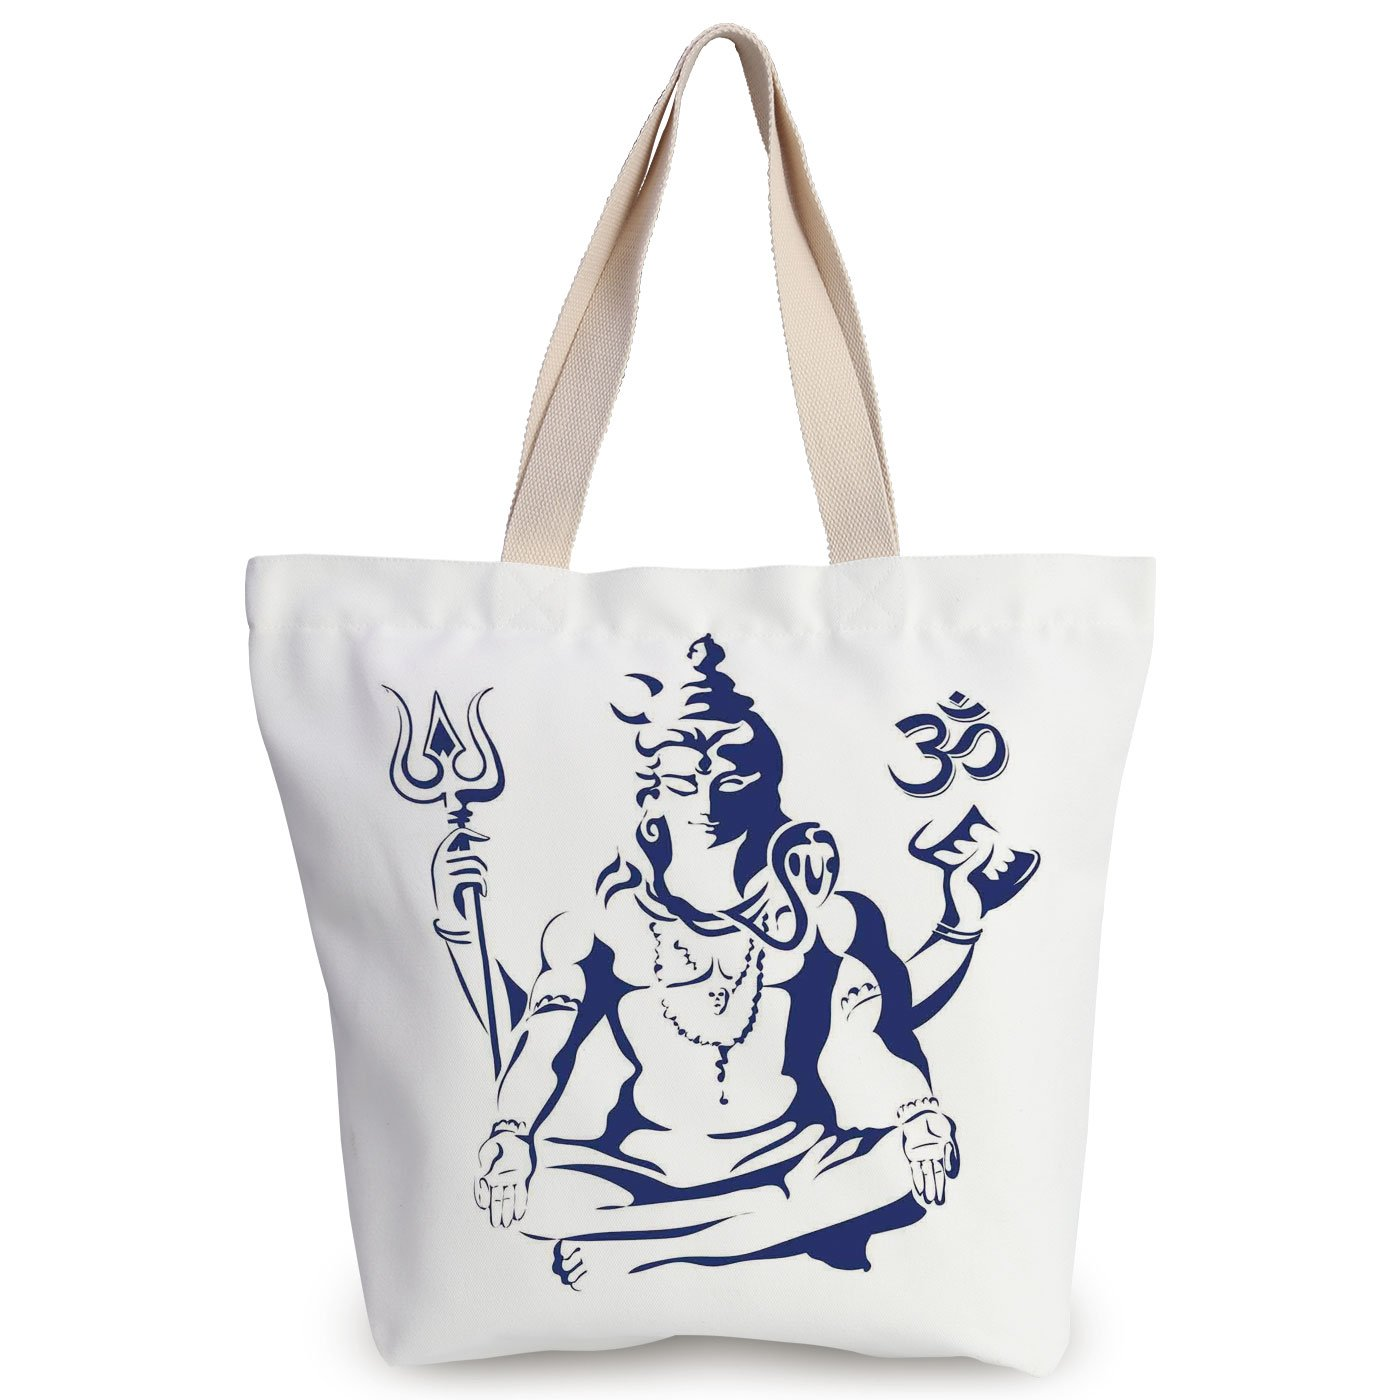 Amazon.com: iPrint Personalized Canvas Tote Bag,Yoga,Eastern ...